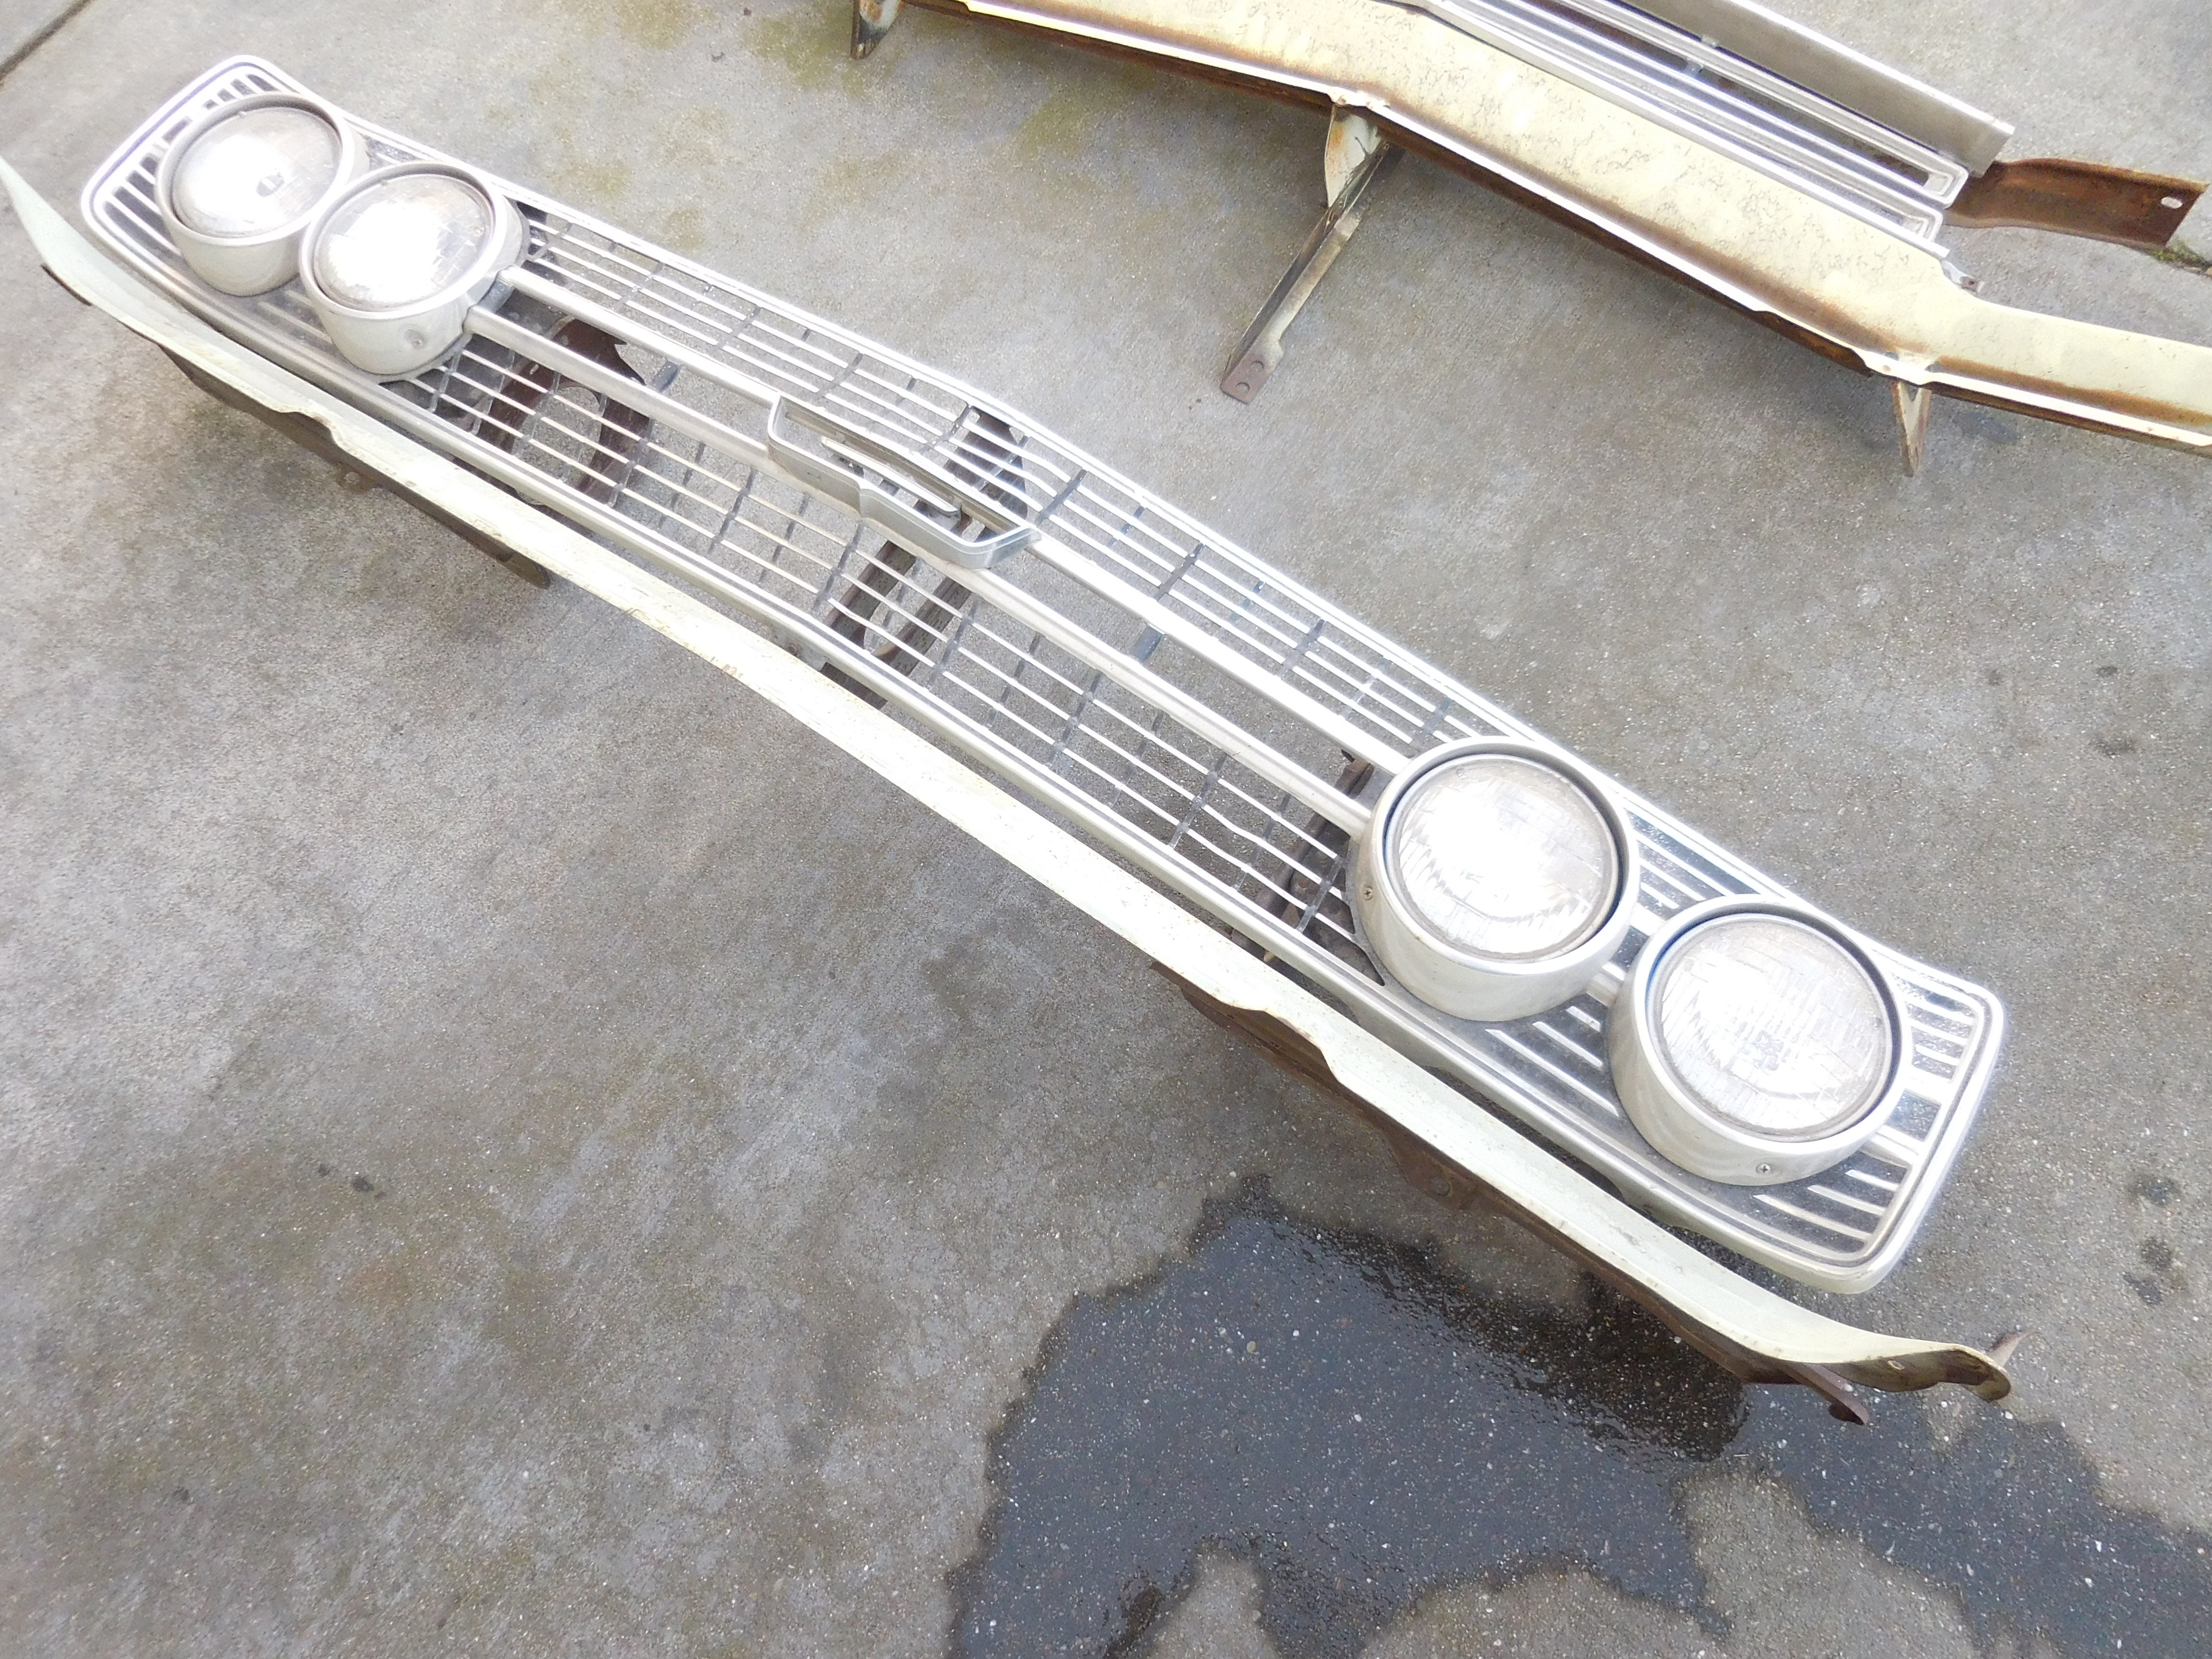 1968 Ford Torino Grill and Lower Valance